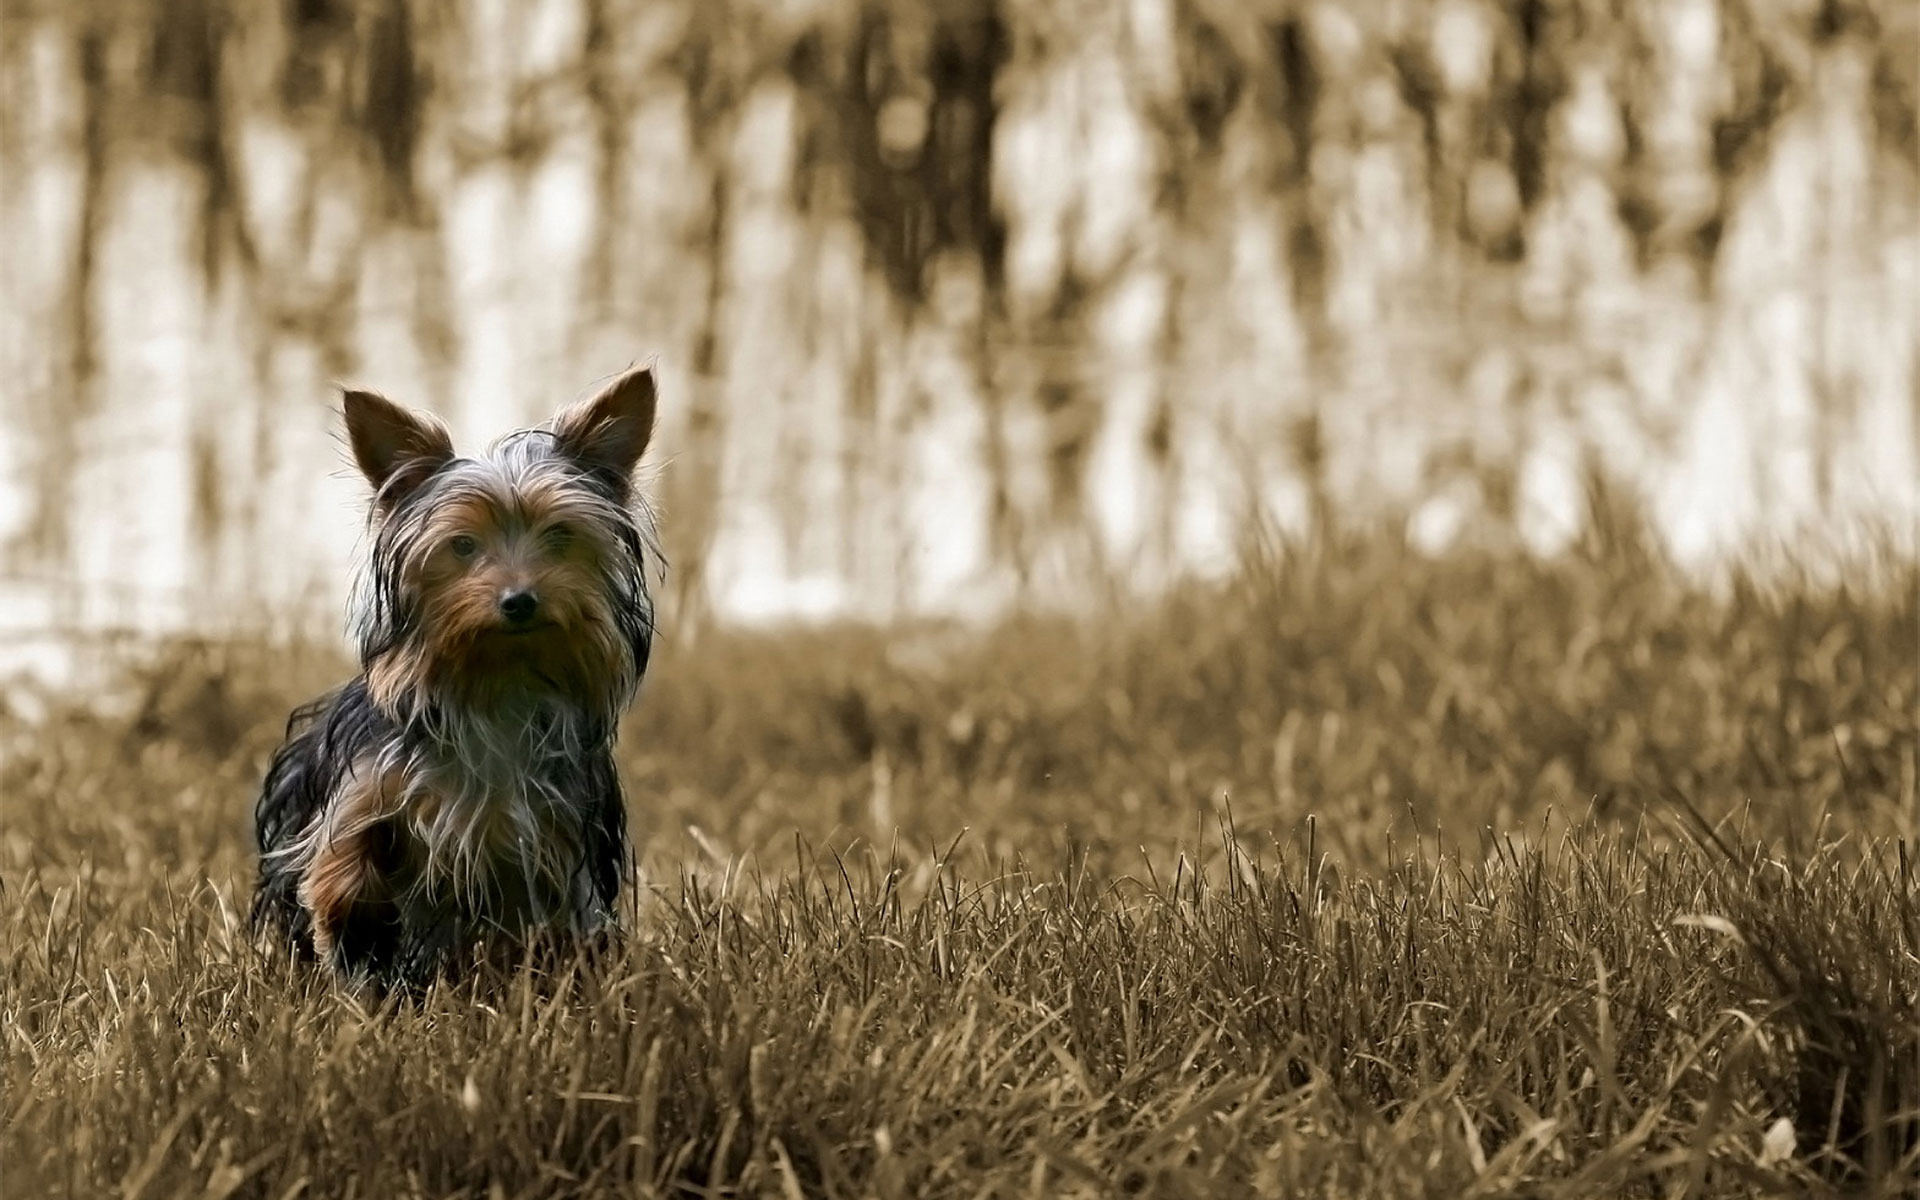 Yorkie Puppies Wallpaper   Wallpaper High Definition High Quality 1920x1200